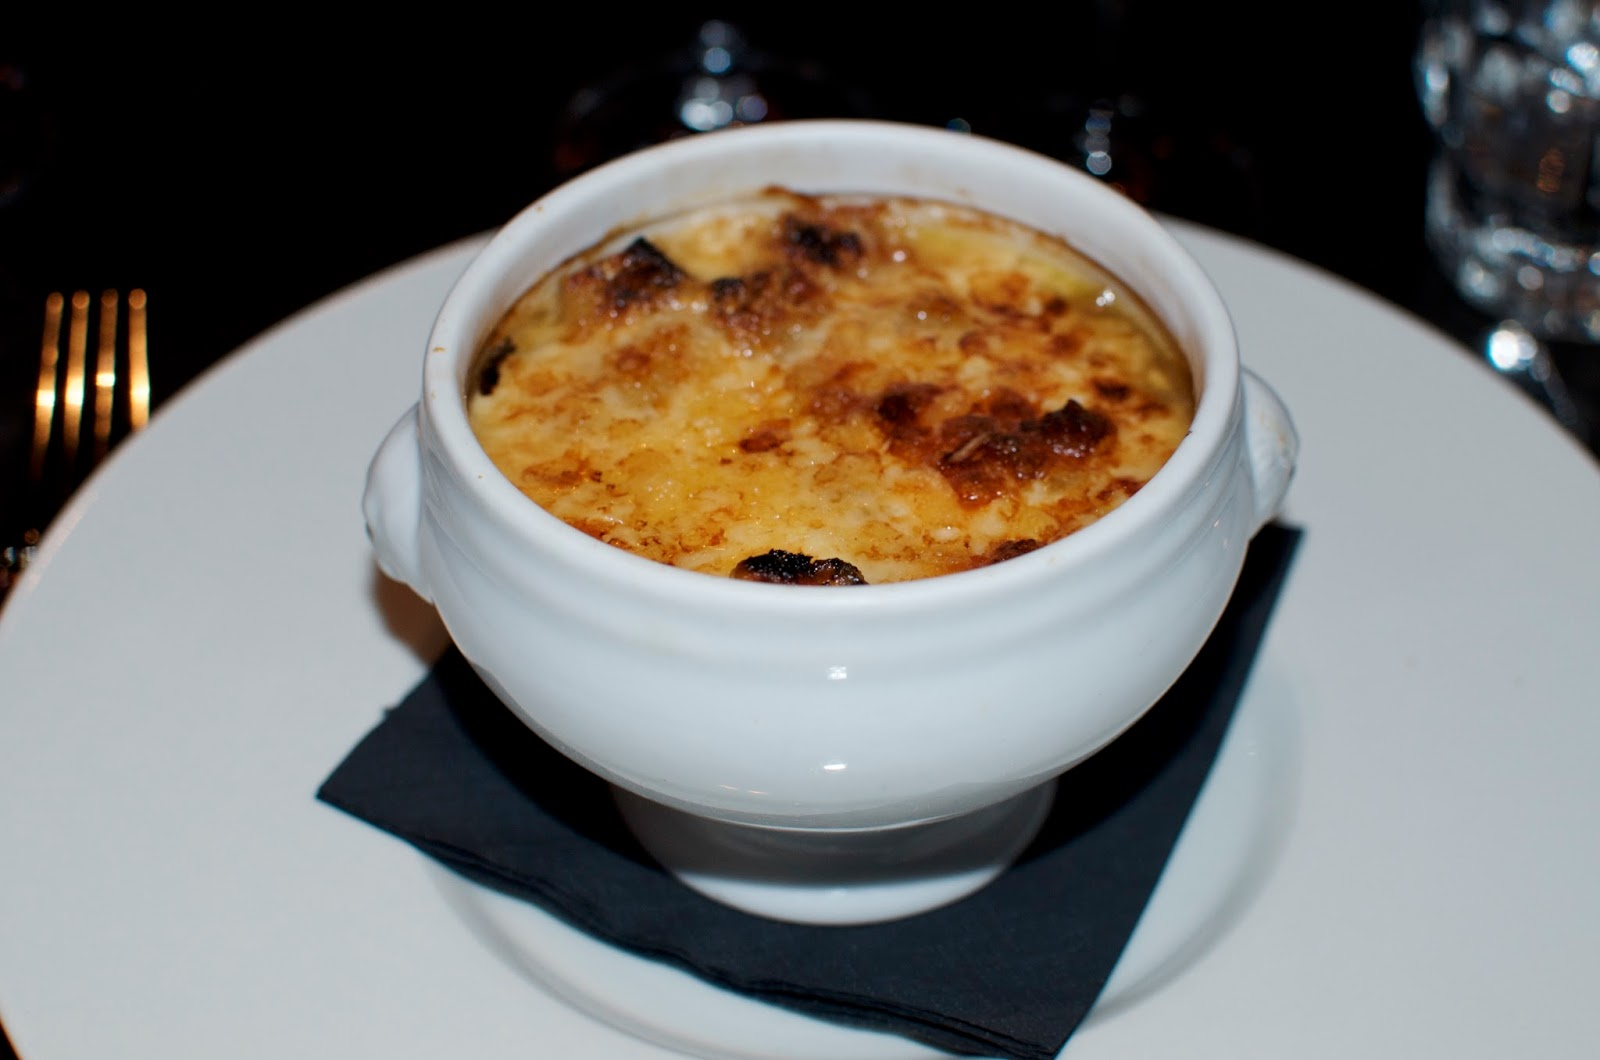 French Onion Soup at Brasserie Joel